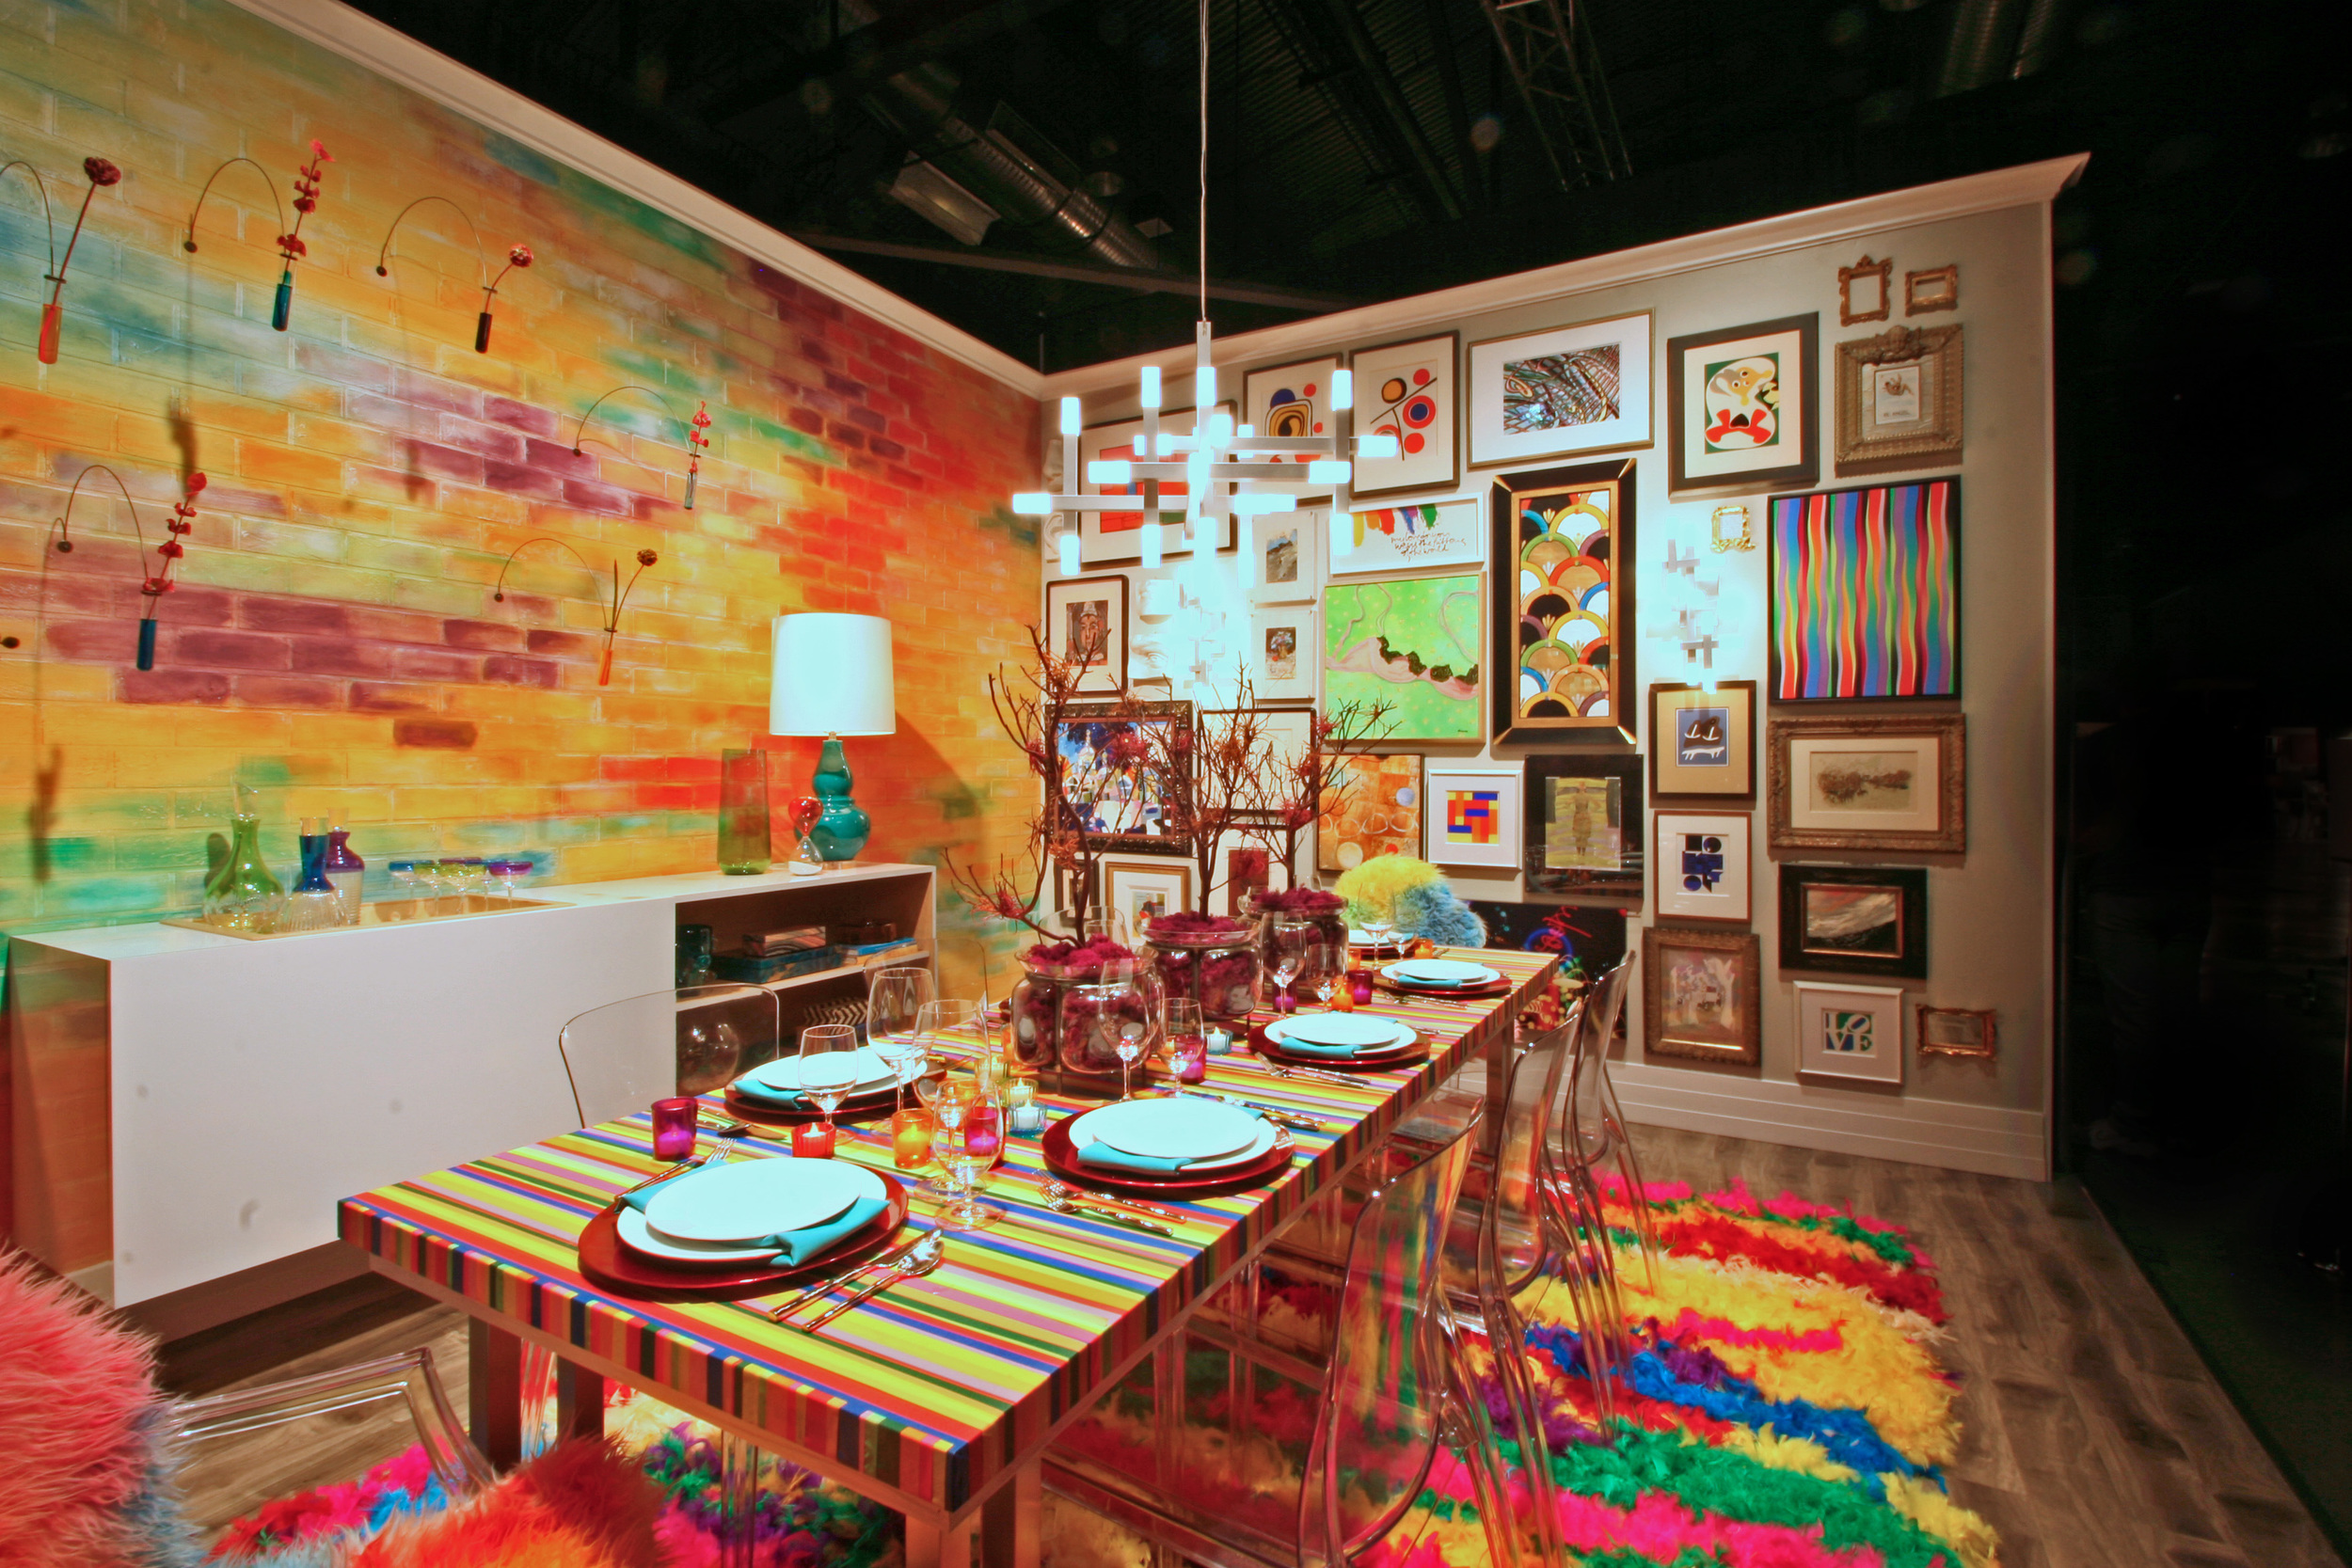 COLORbomb, rainbow colored rooms, bright interior decor